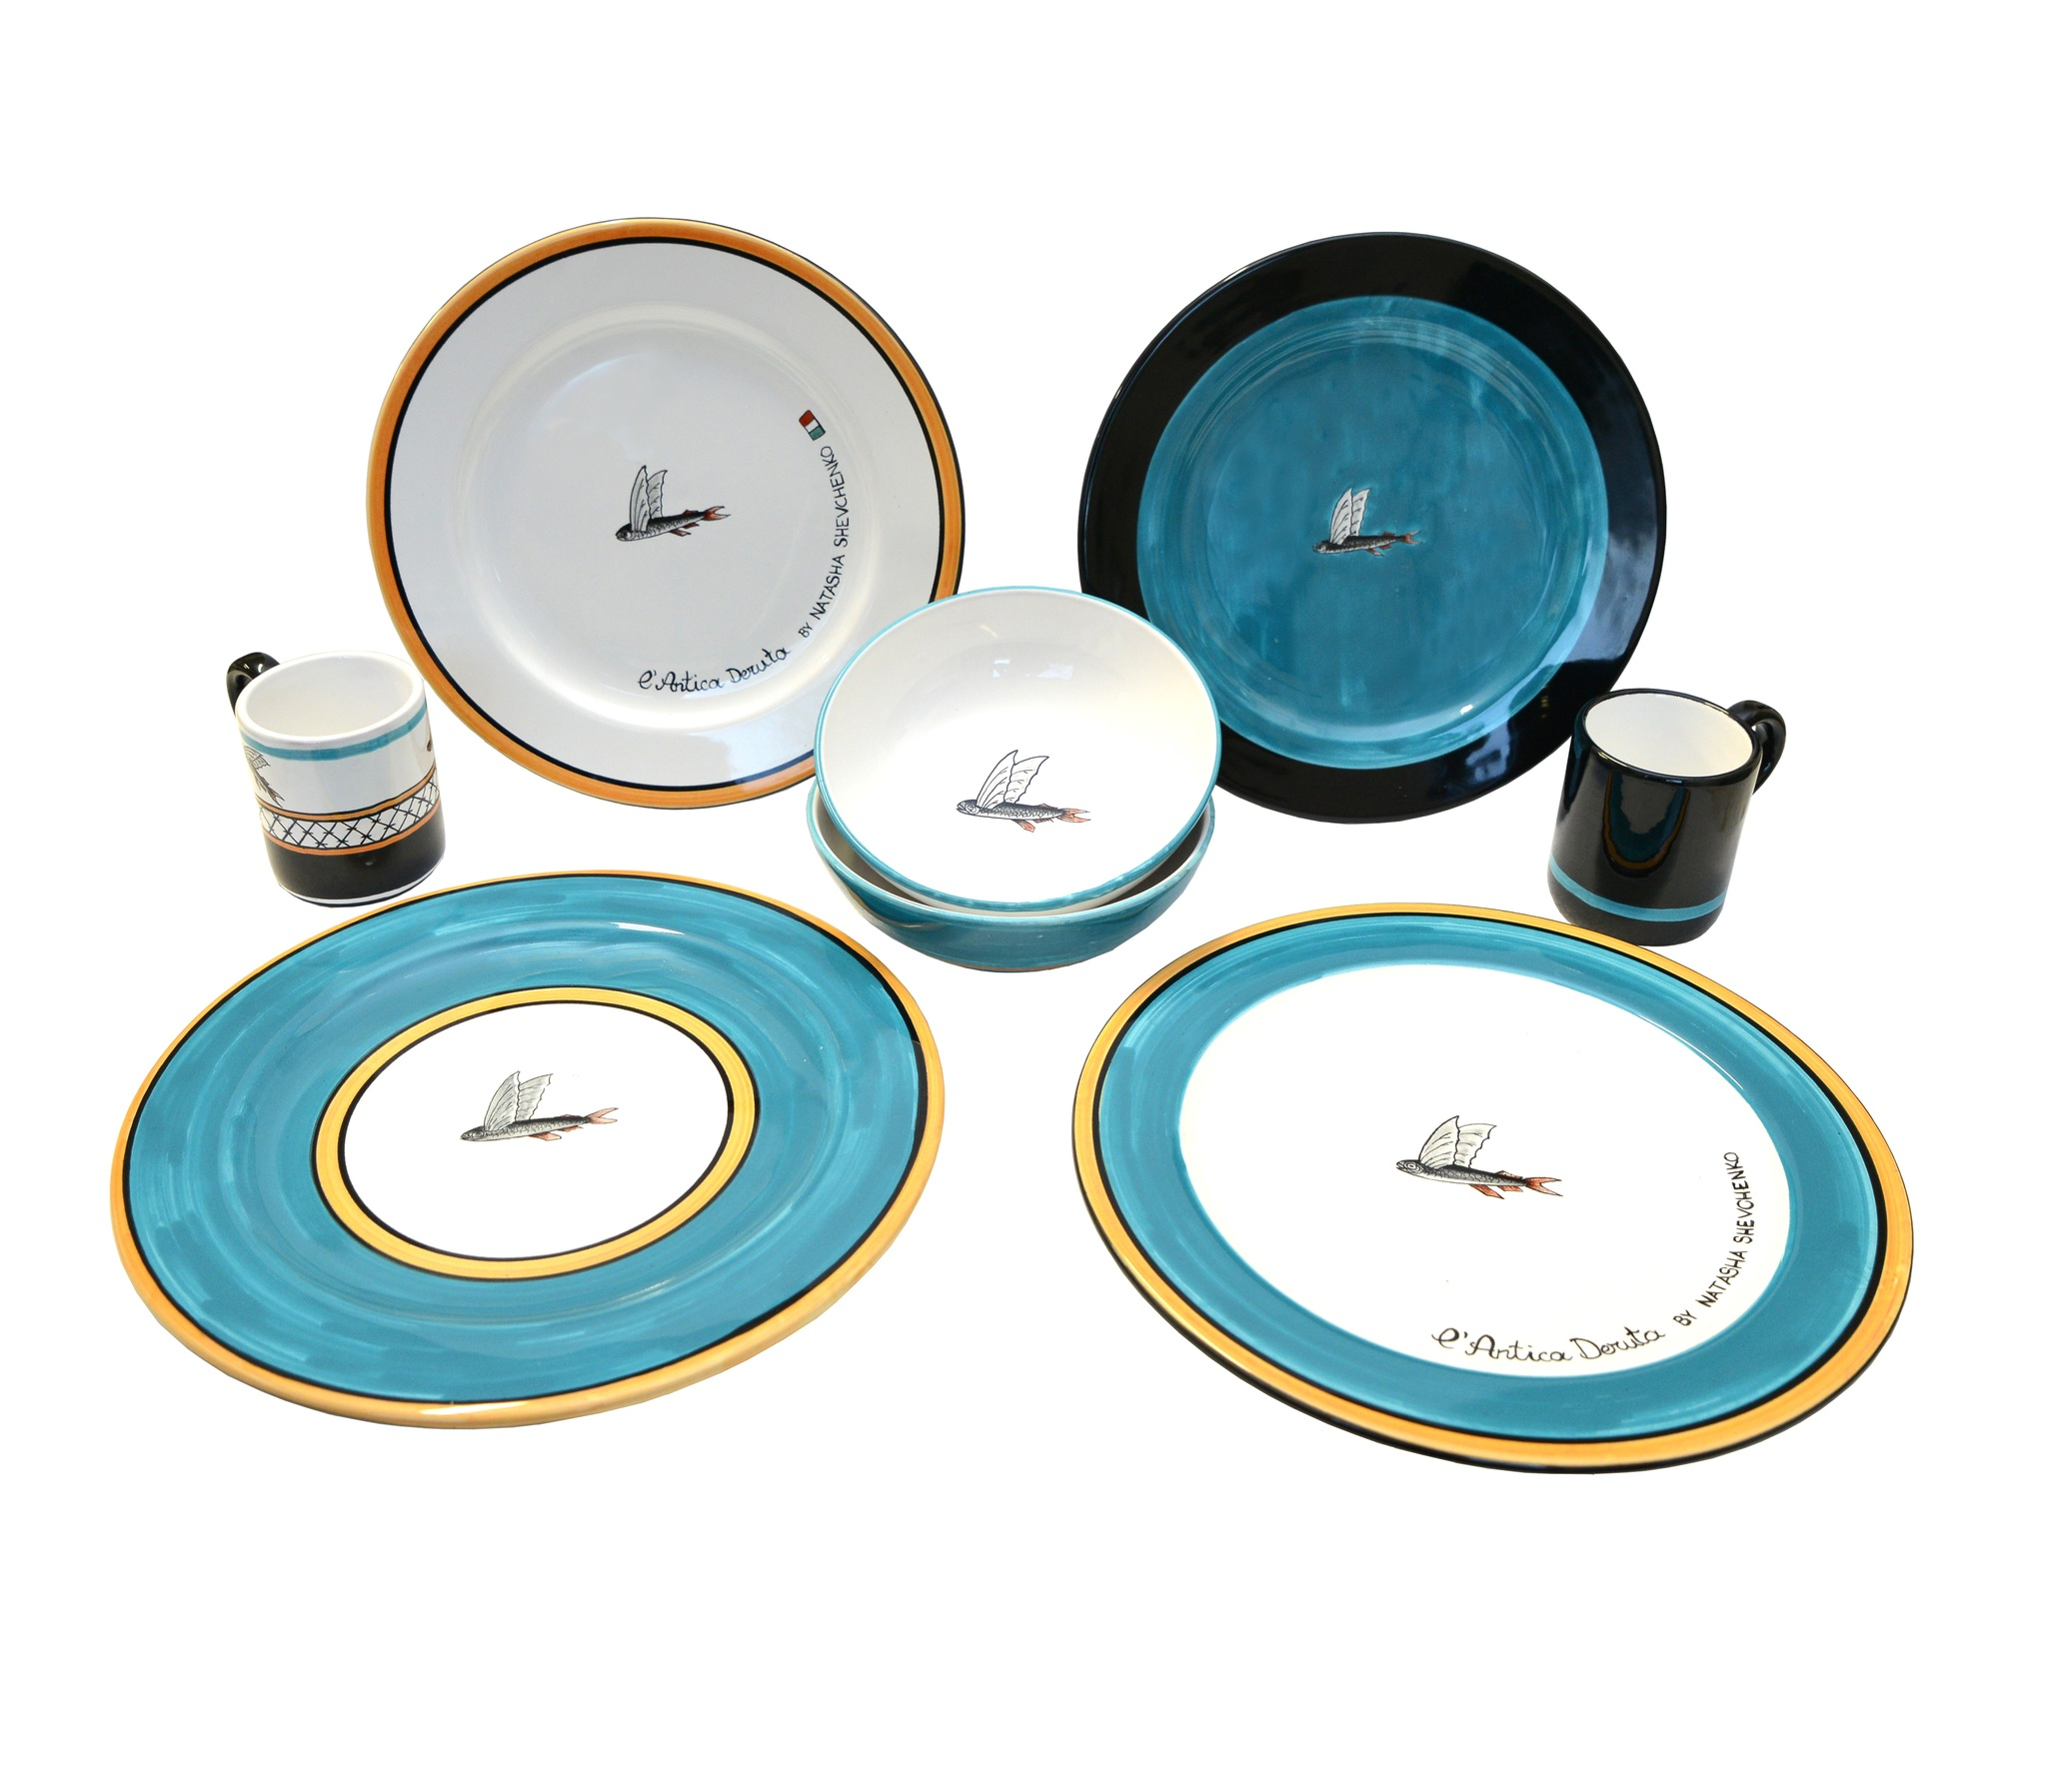 Set of plates Flying Fish collection, 4 pc.